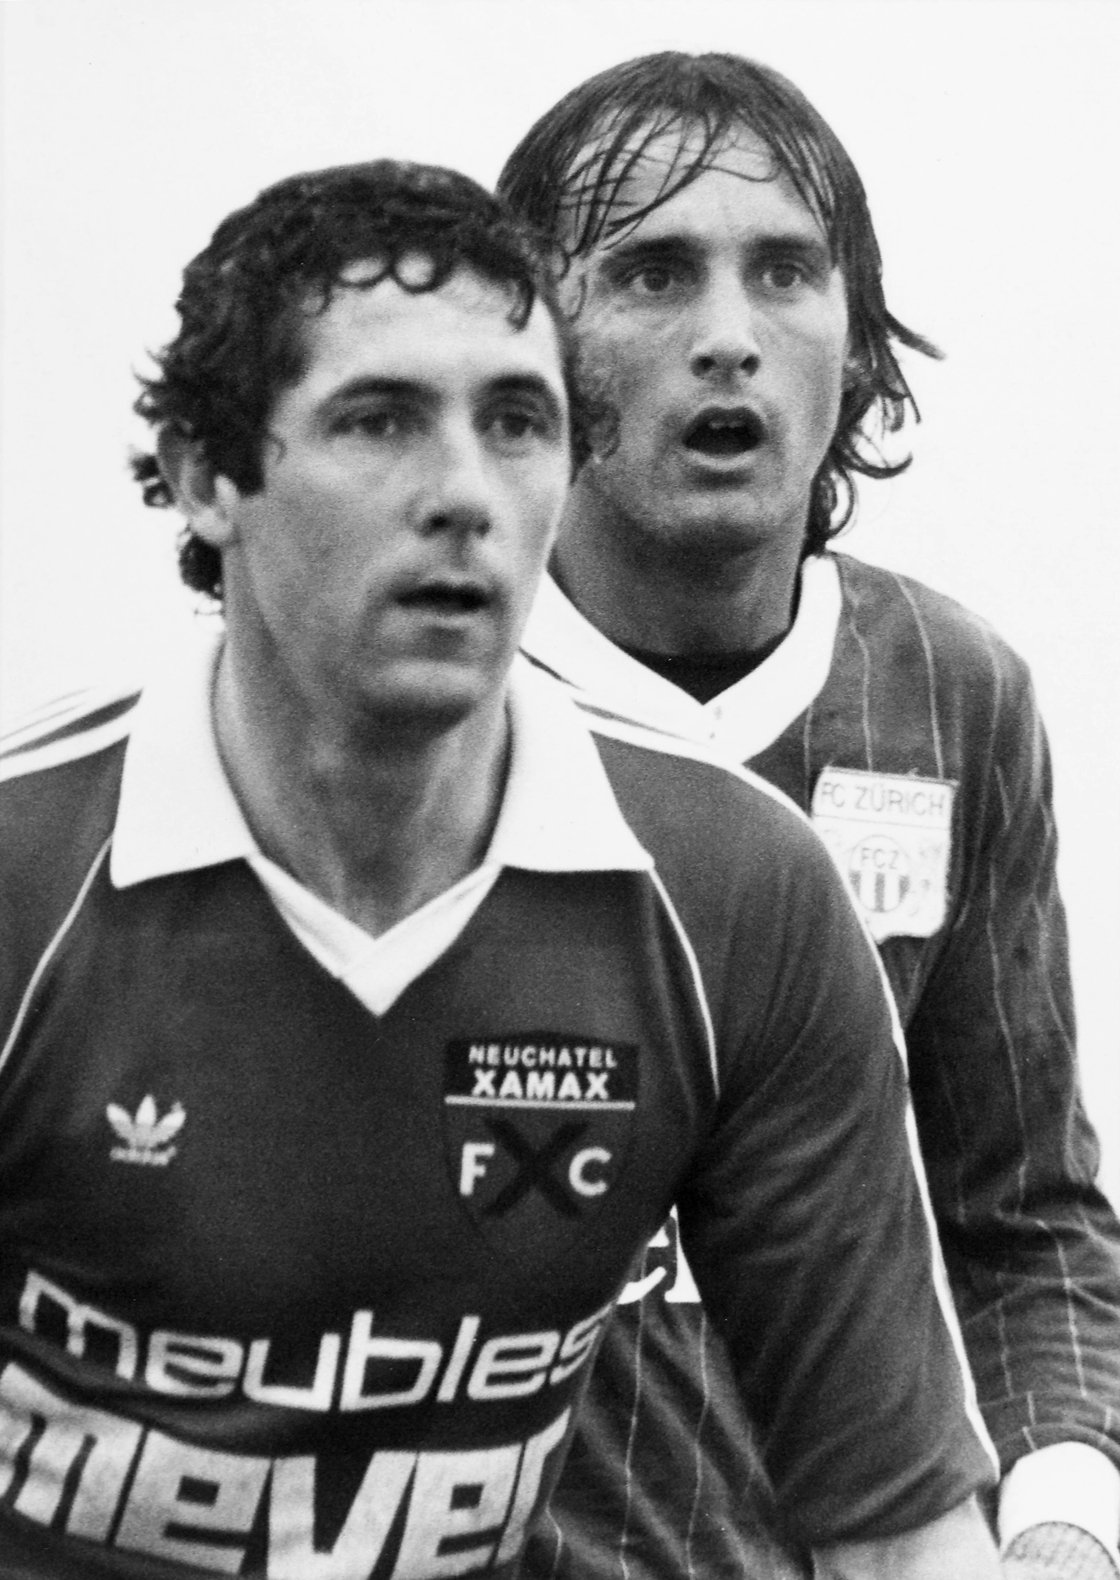 Image - Givens and FC Zurich's Fritz Baur in 1982